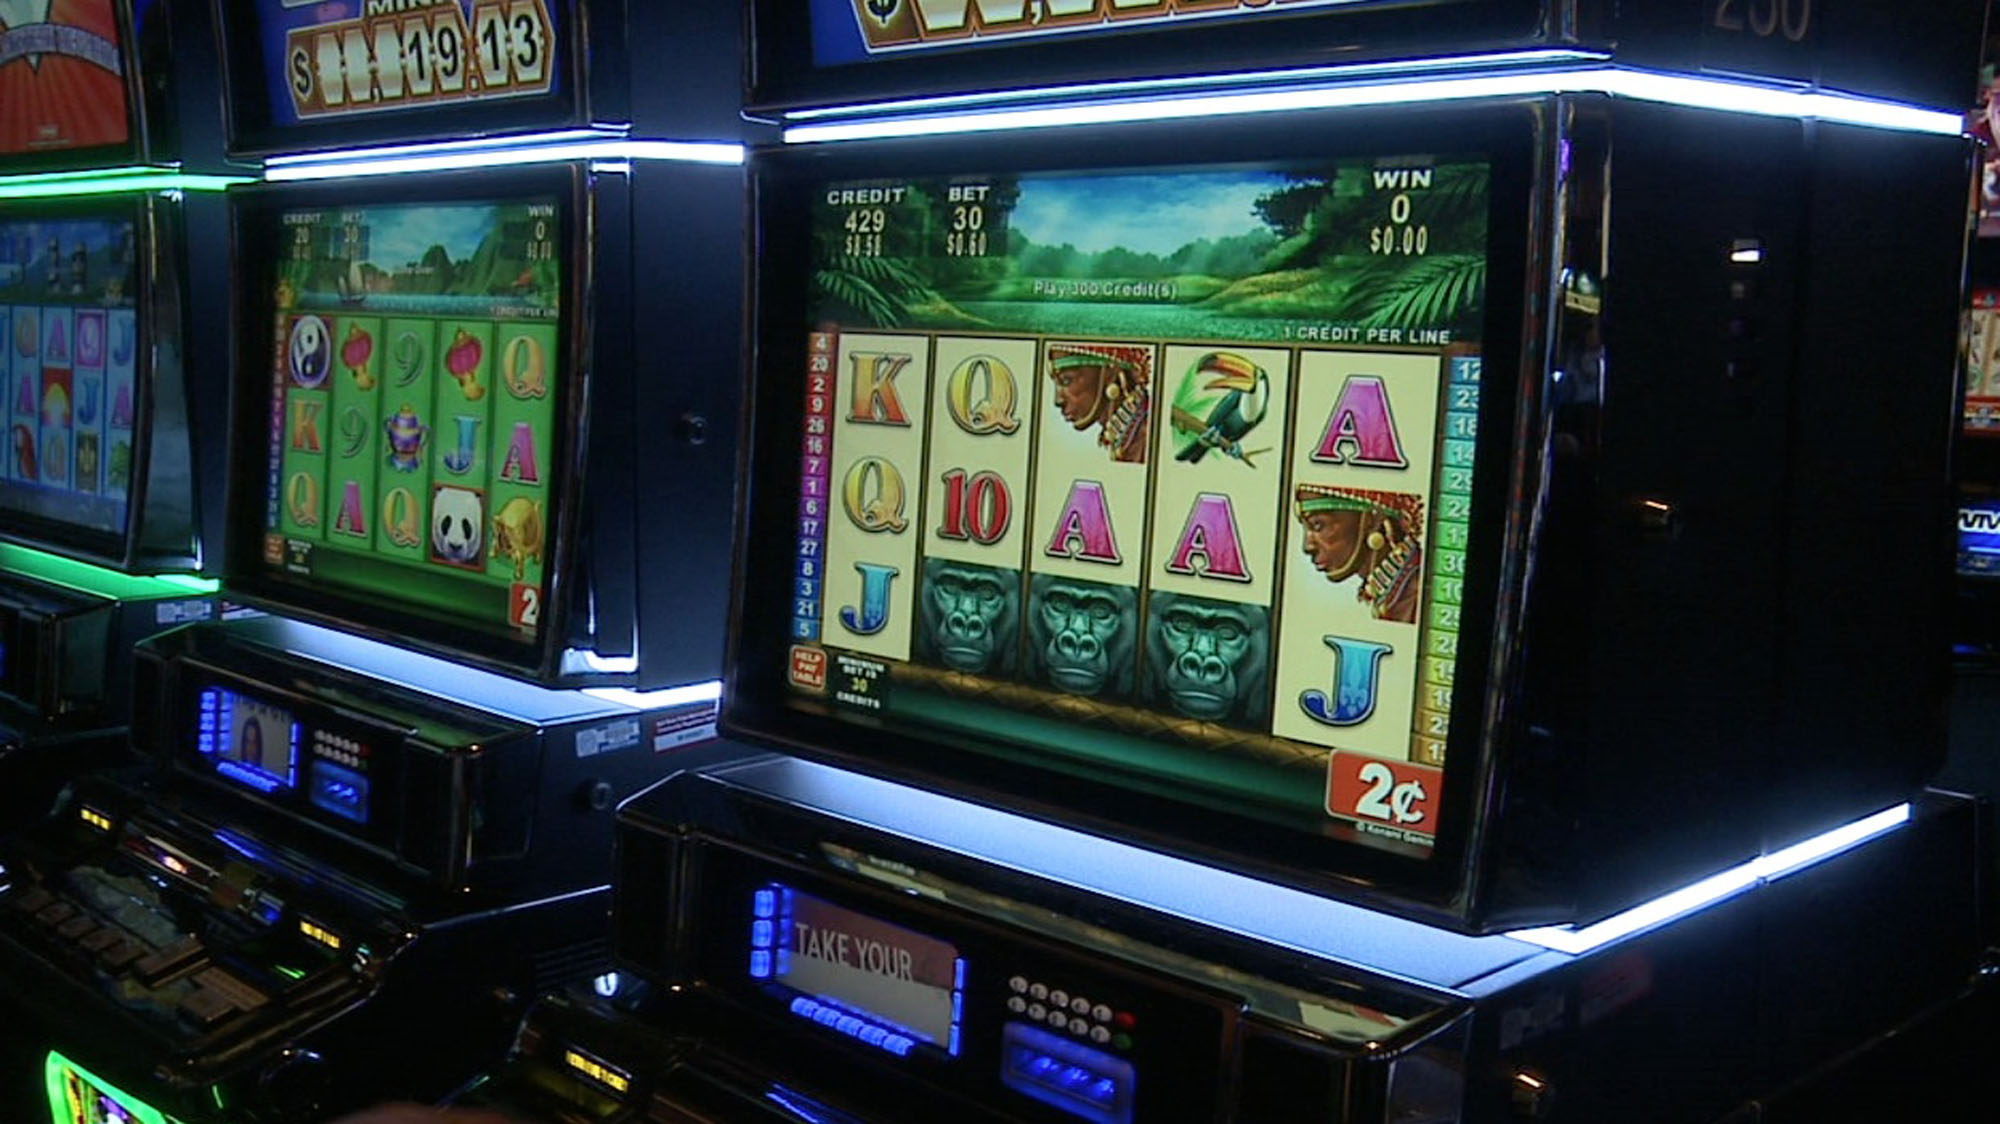 Report: Dip in gaming revenues offset by other gains at Arizona casinos